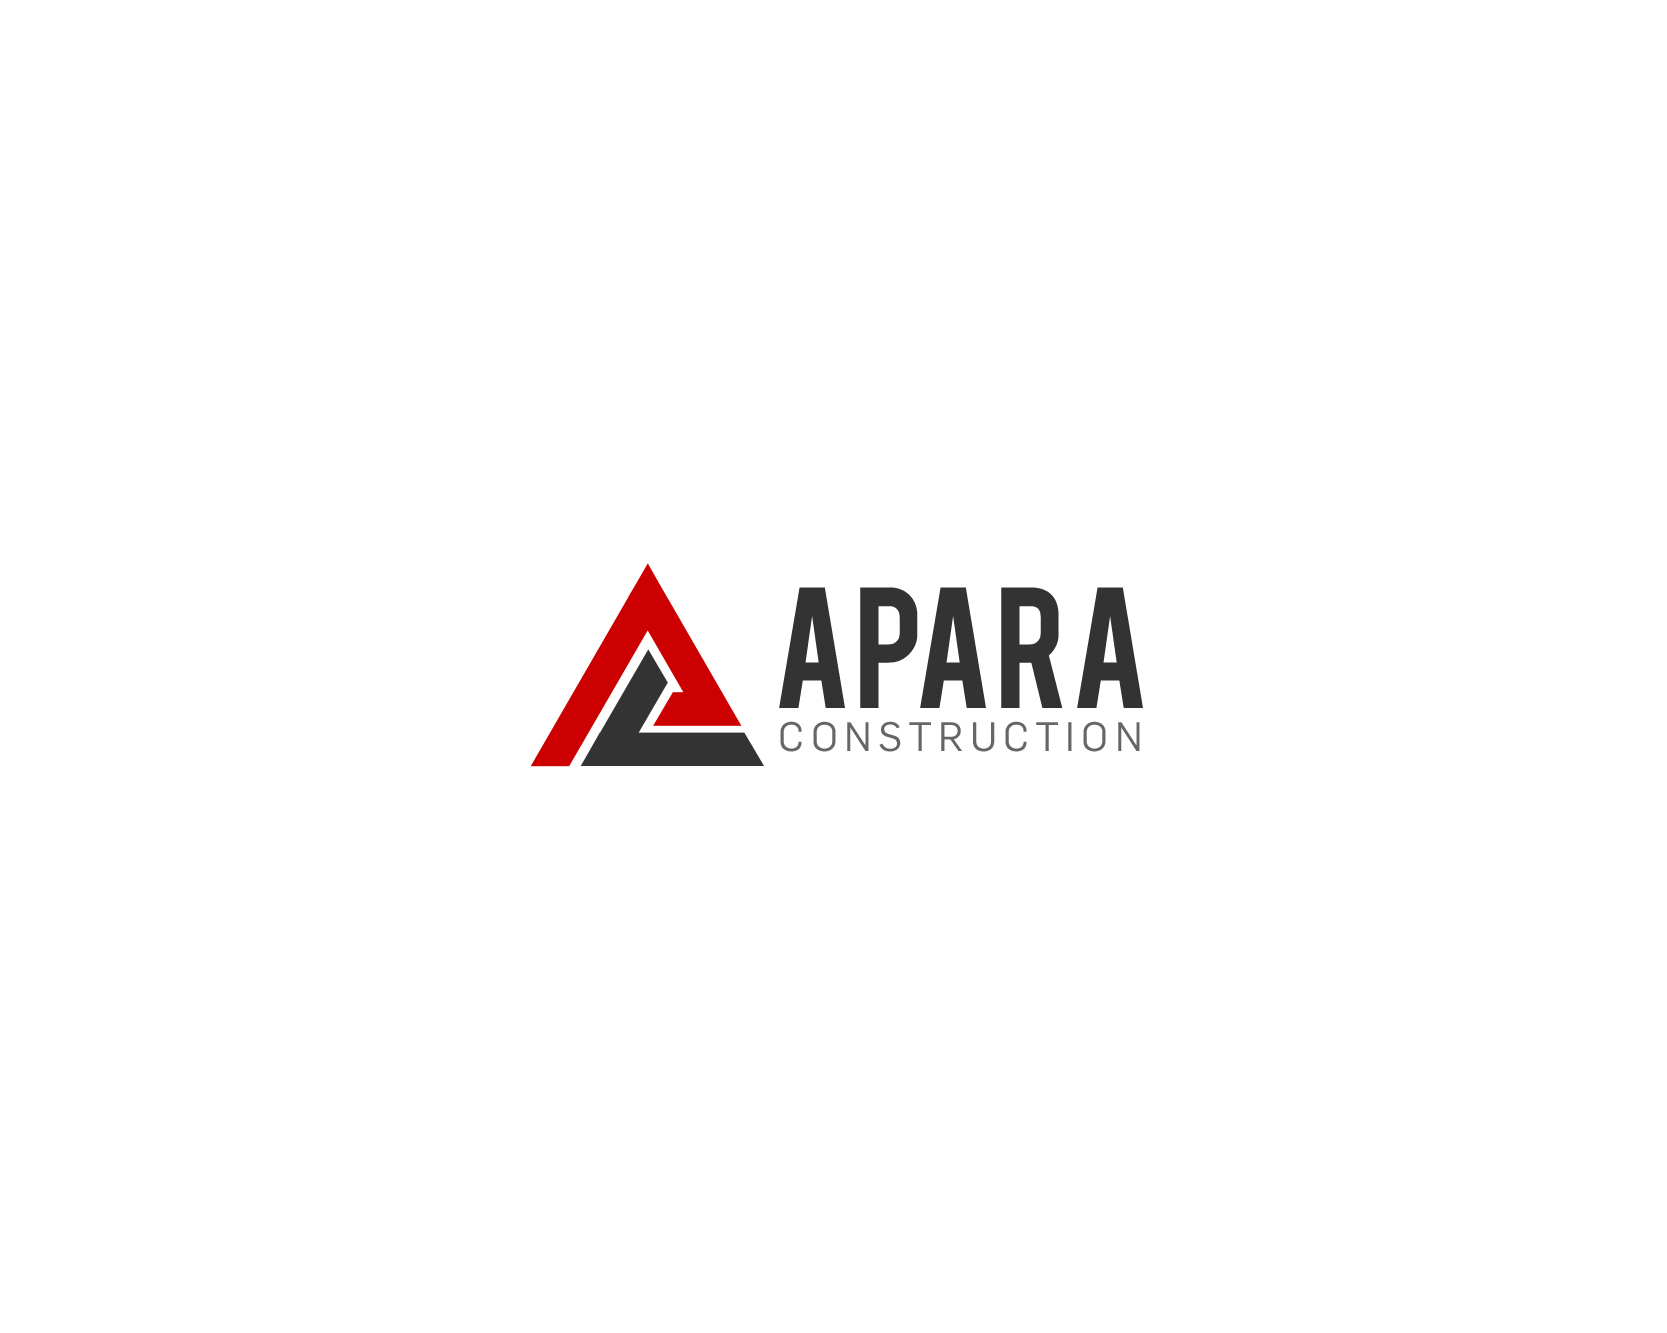 Logo Design by nejikun - Entry No. 103 in the Logo Design Contest Apara Construction Logo Design.